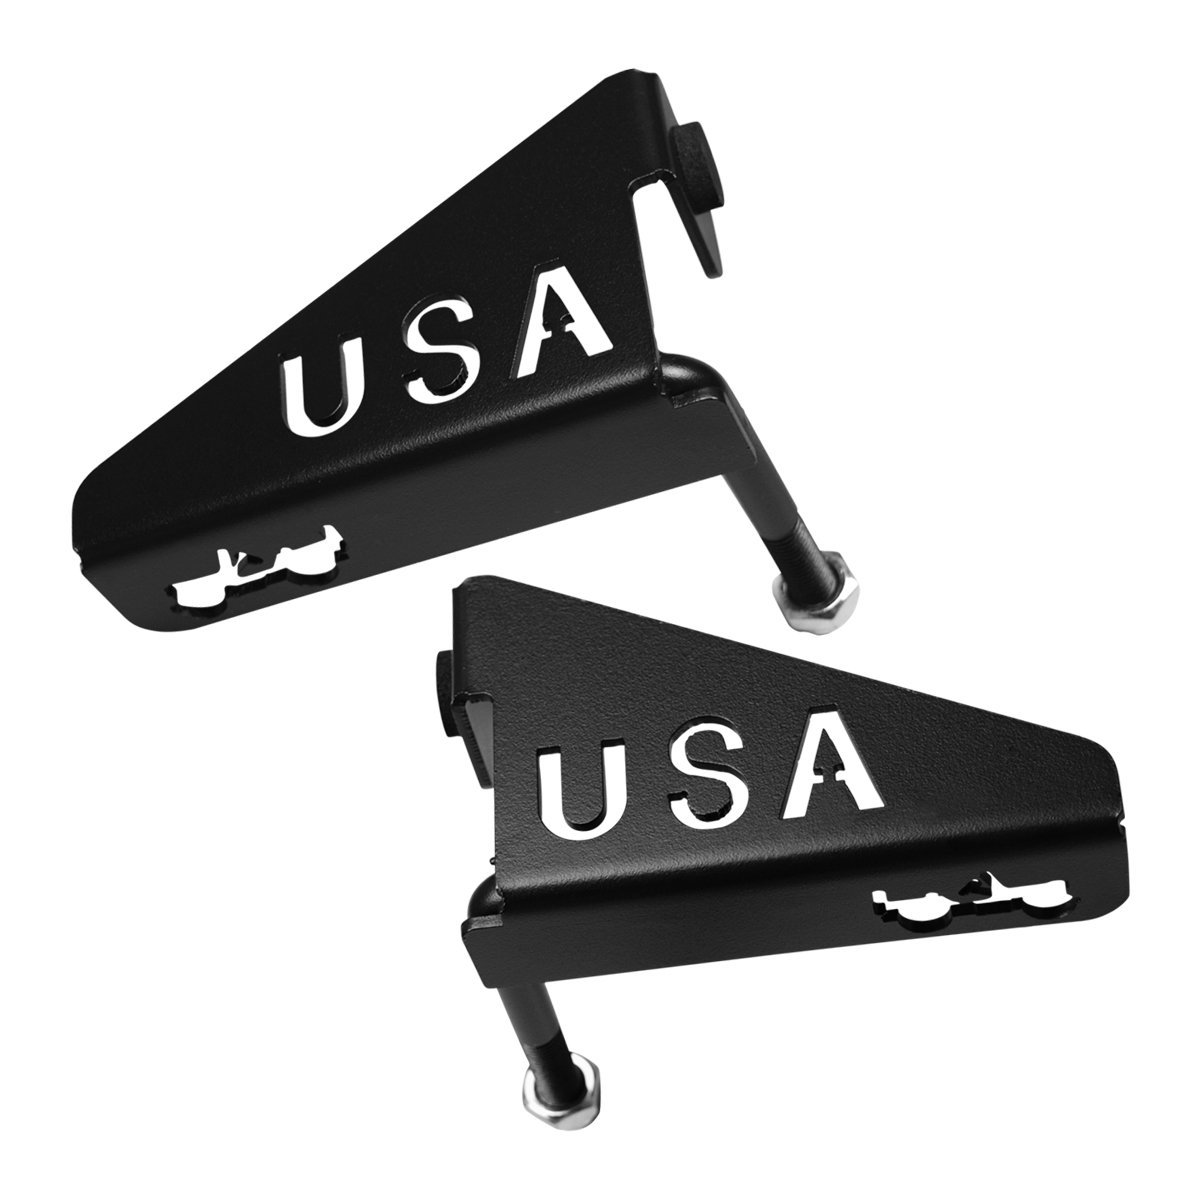 Extreme Off-Road USA Steel Foot Pedals Footrest Pegs Panel 2007-2018 2&4 Door Jeep Wrangler JK JKU Off-Road Rubicon Sahara Sports